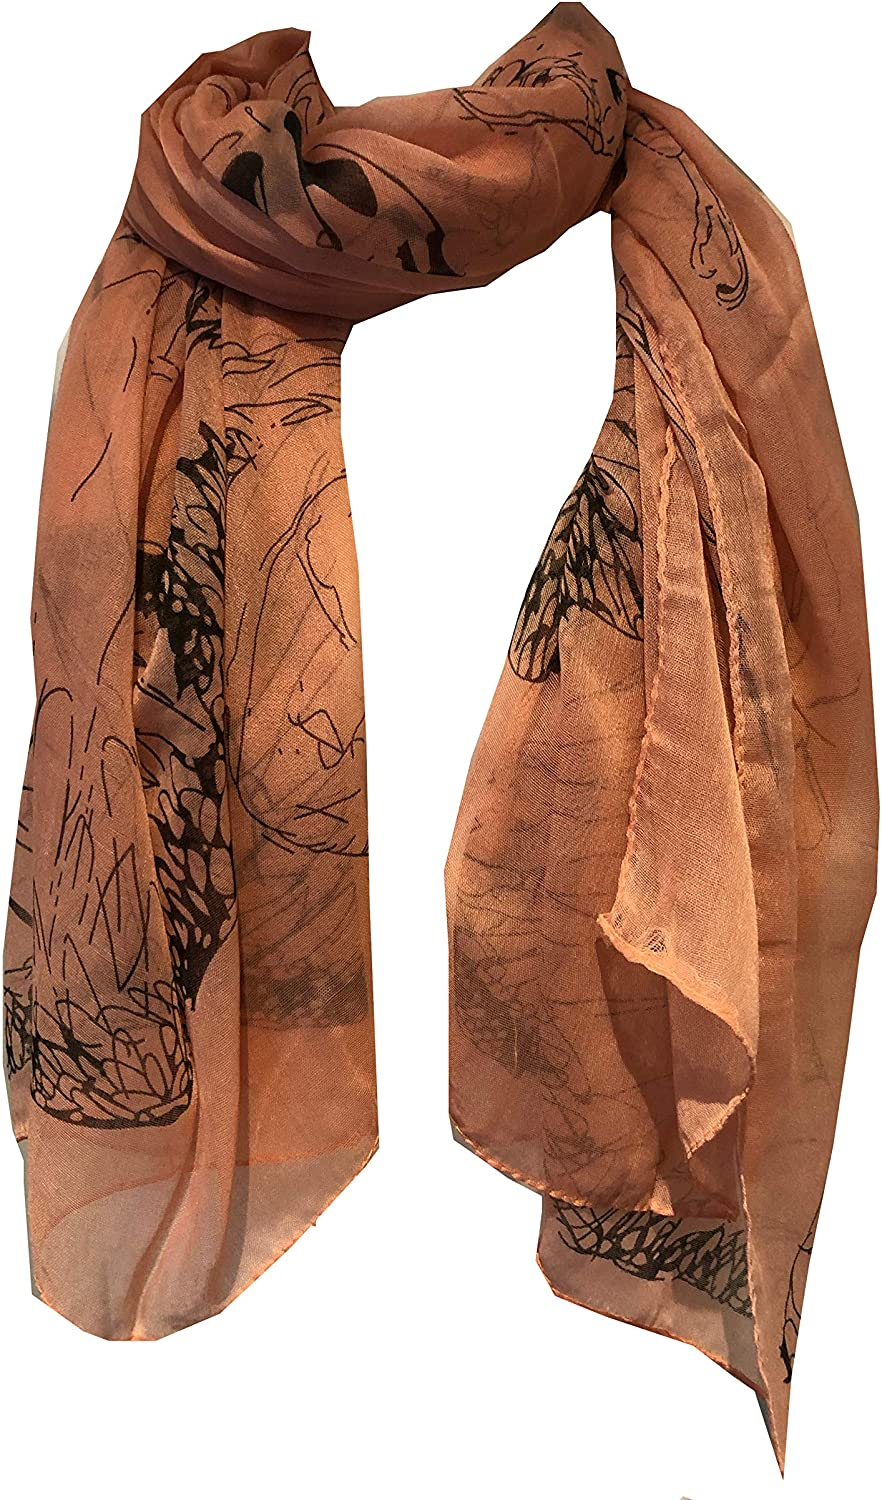 Peach with Brown Eagle and Skull Design Scarf/wrap.